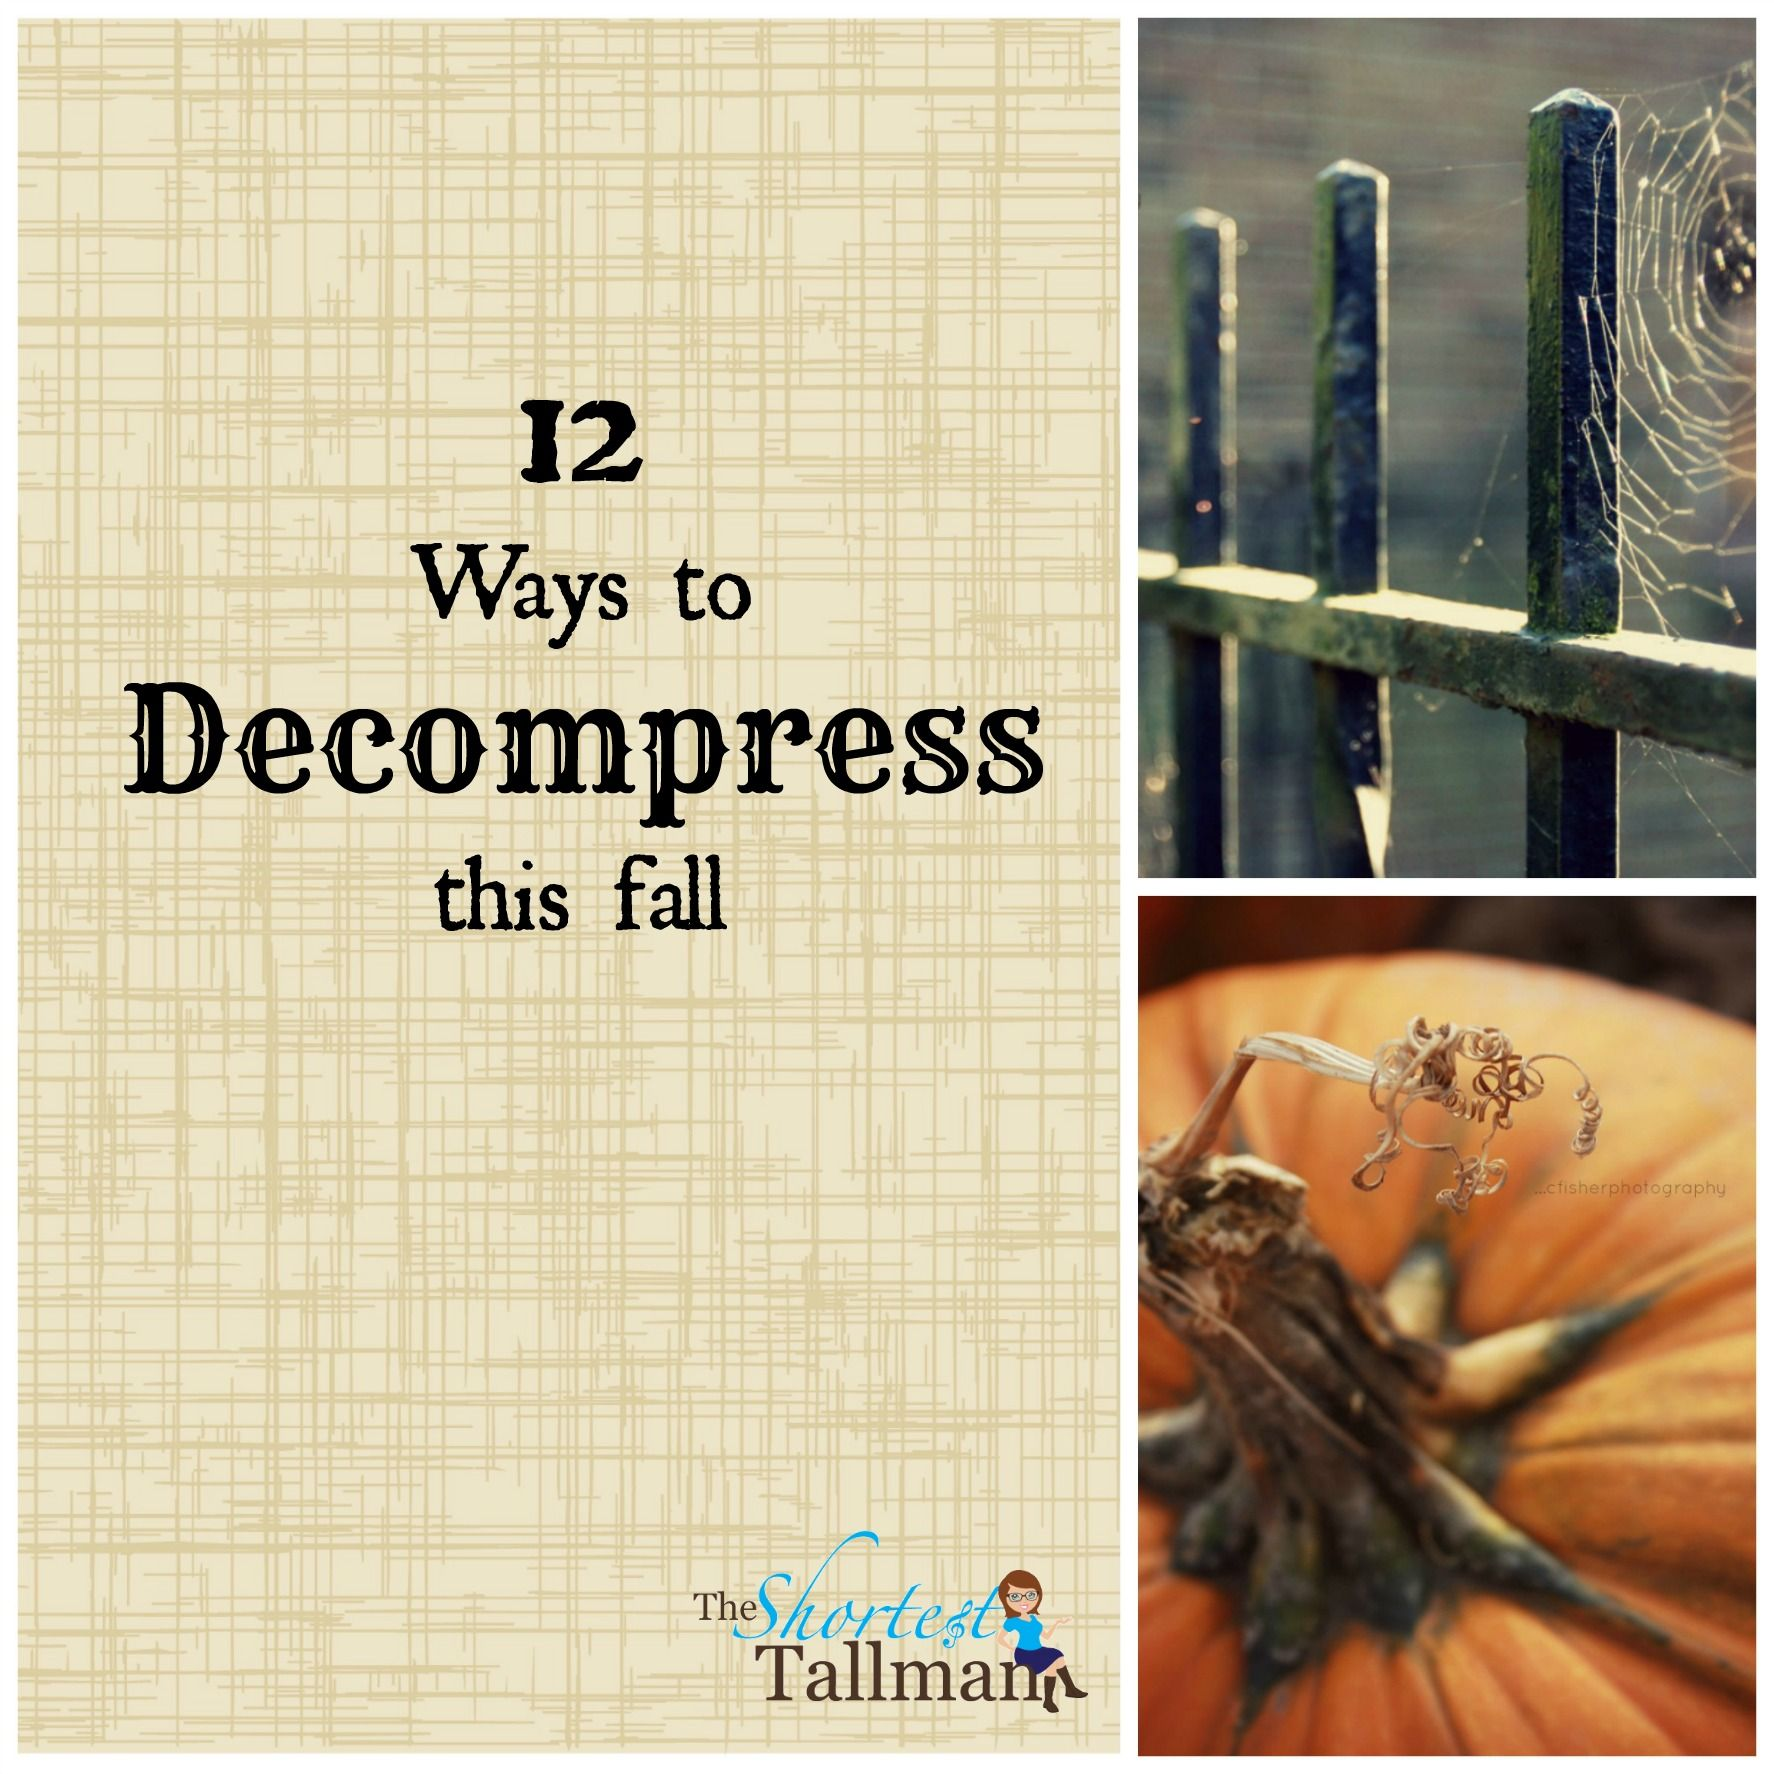 Fall Can Bring A Lot Of Stress And Worry. Here Are 12 Ways To Decompress This Fall! www.theshortesttallman.com